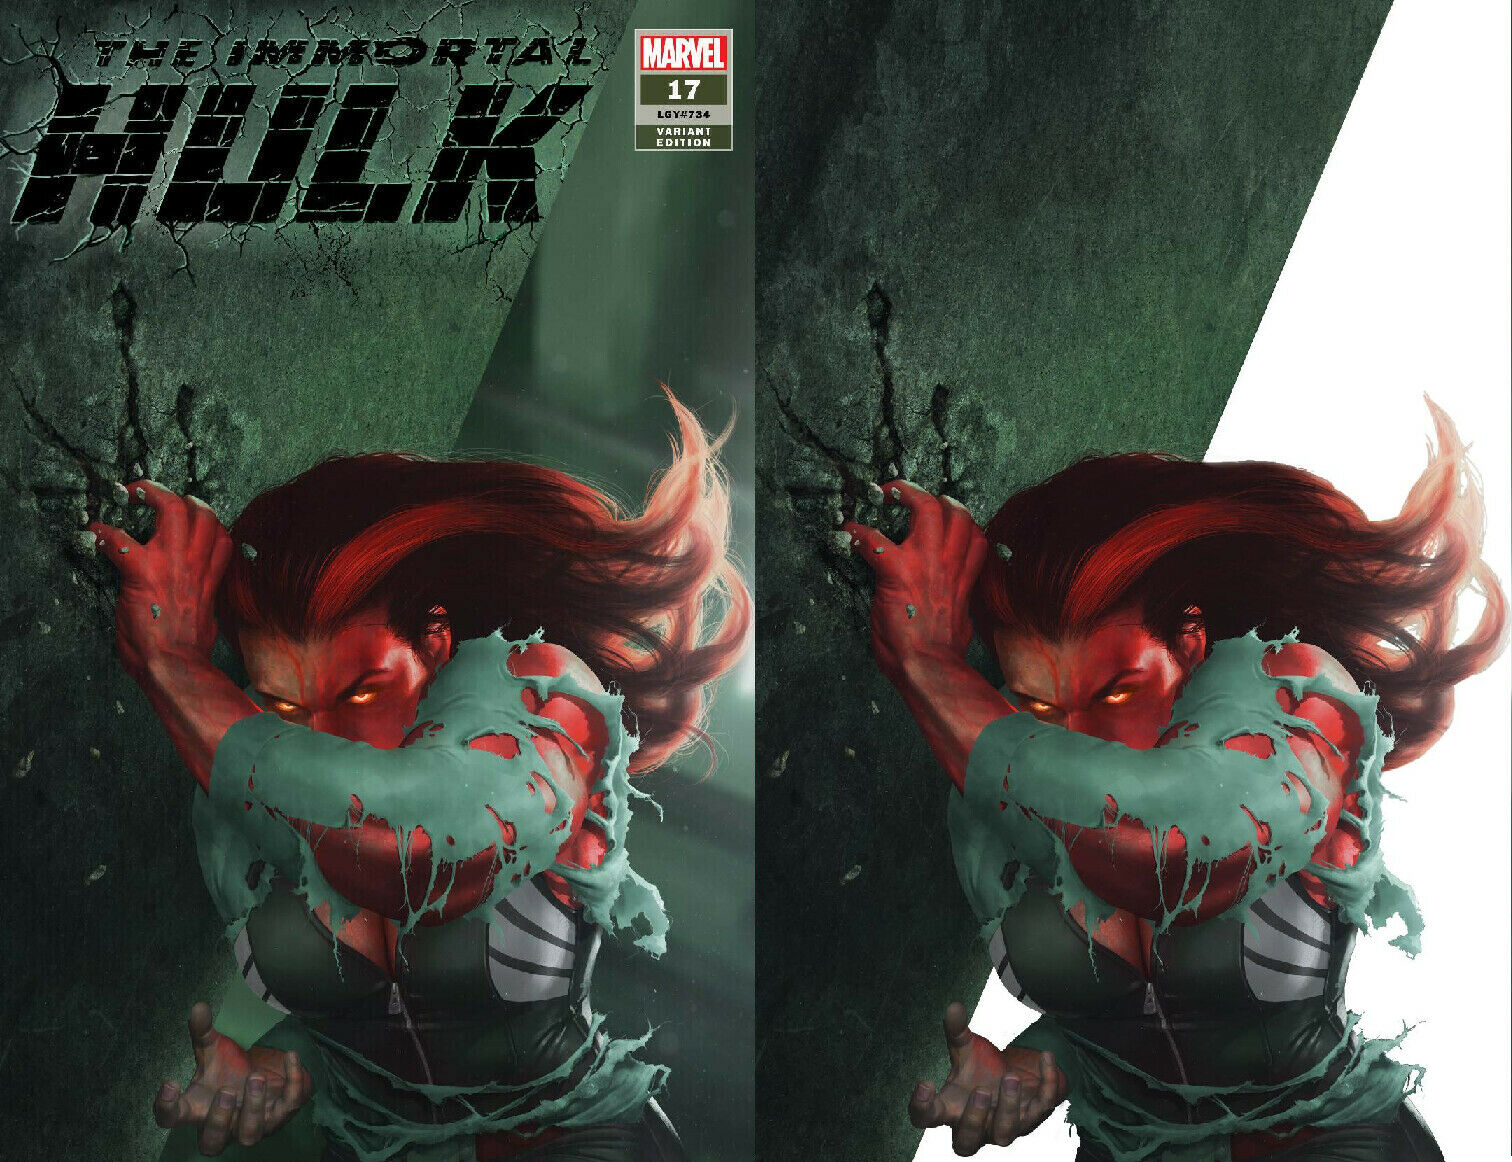 IMMORTAL HULK #17 RAHZZAH RED SHE-HULK EXCLUSIVE VARIANTS